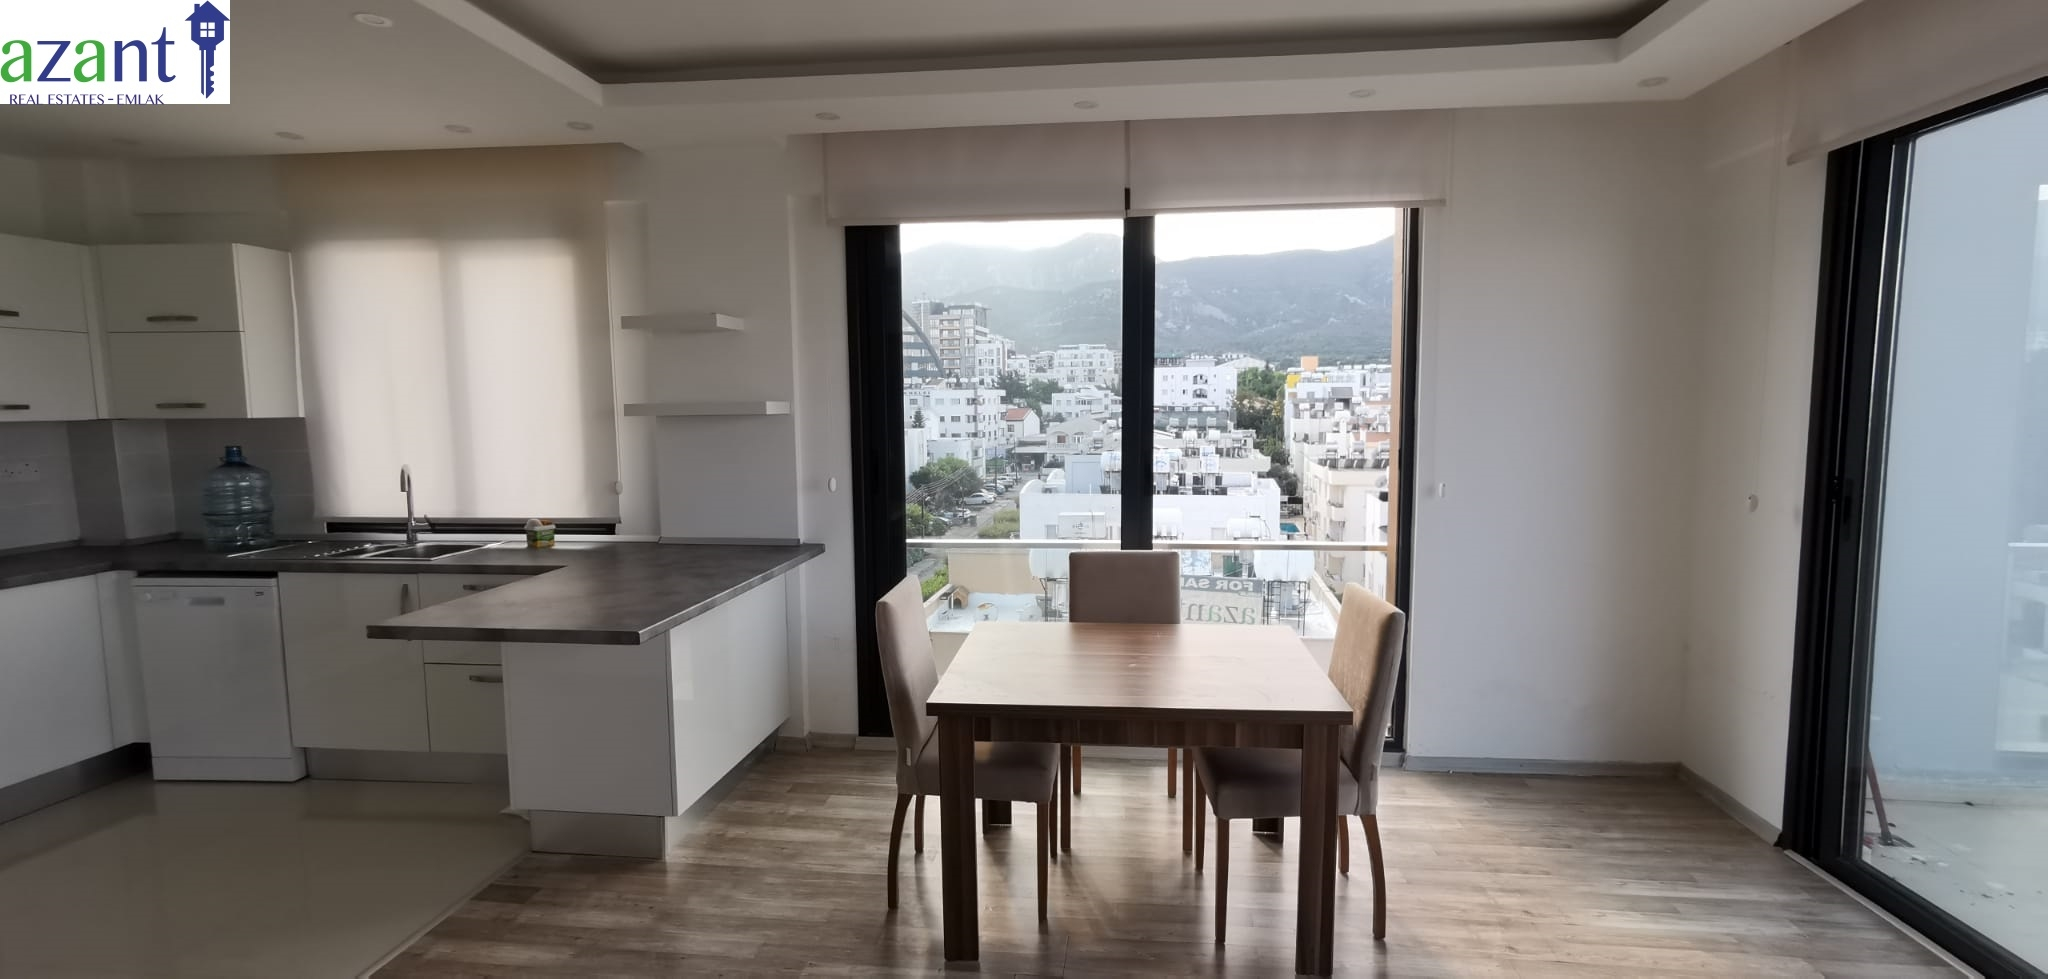 MODERN 2 BEDROOM APARTMENT IN THE HEART OF KYRENIA